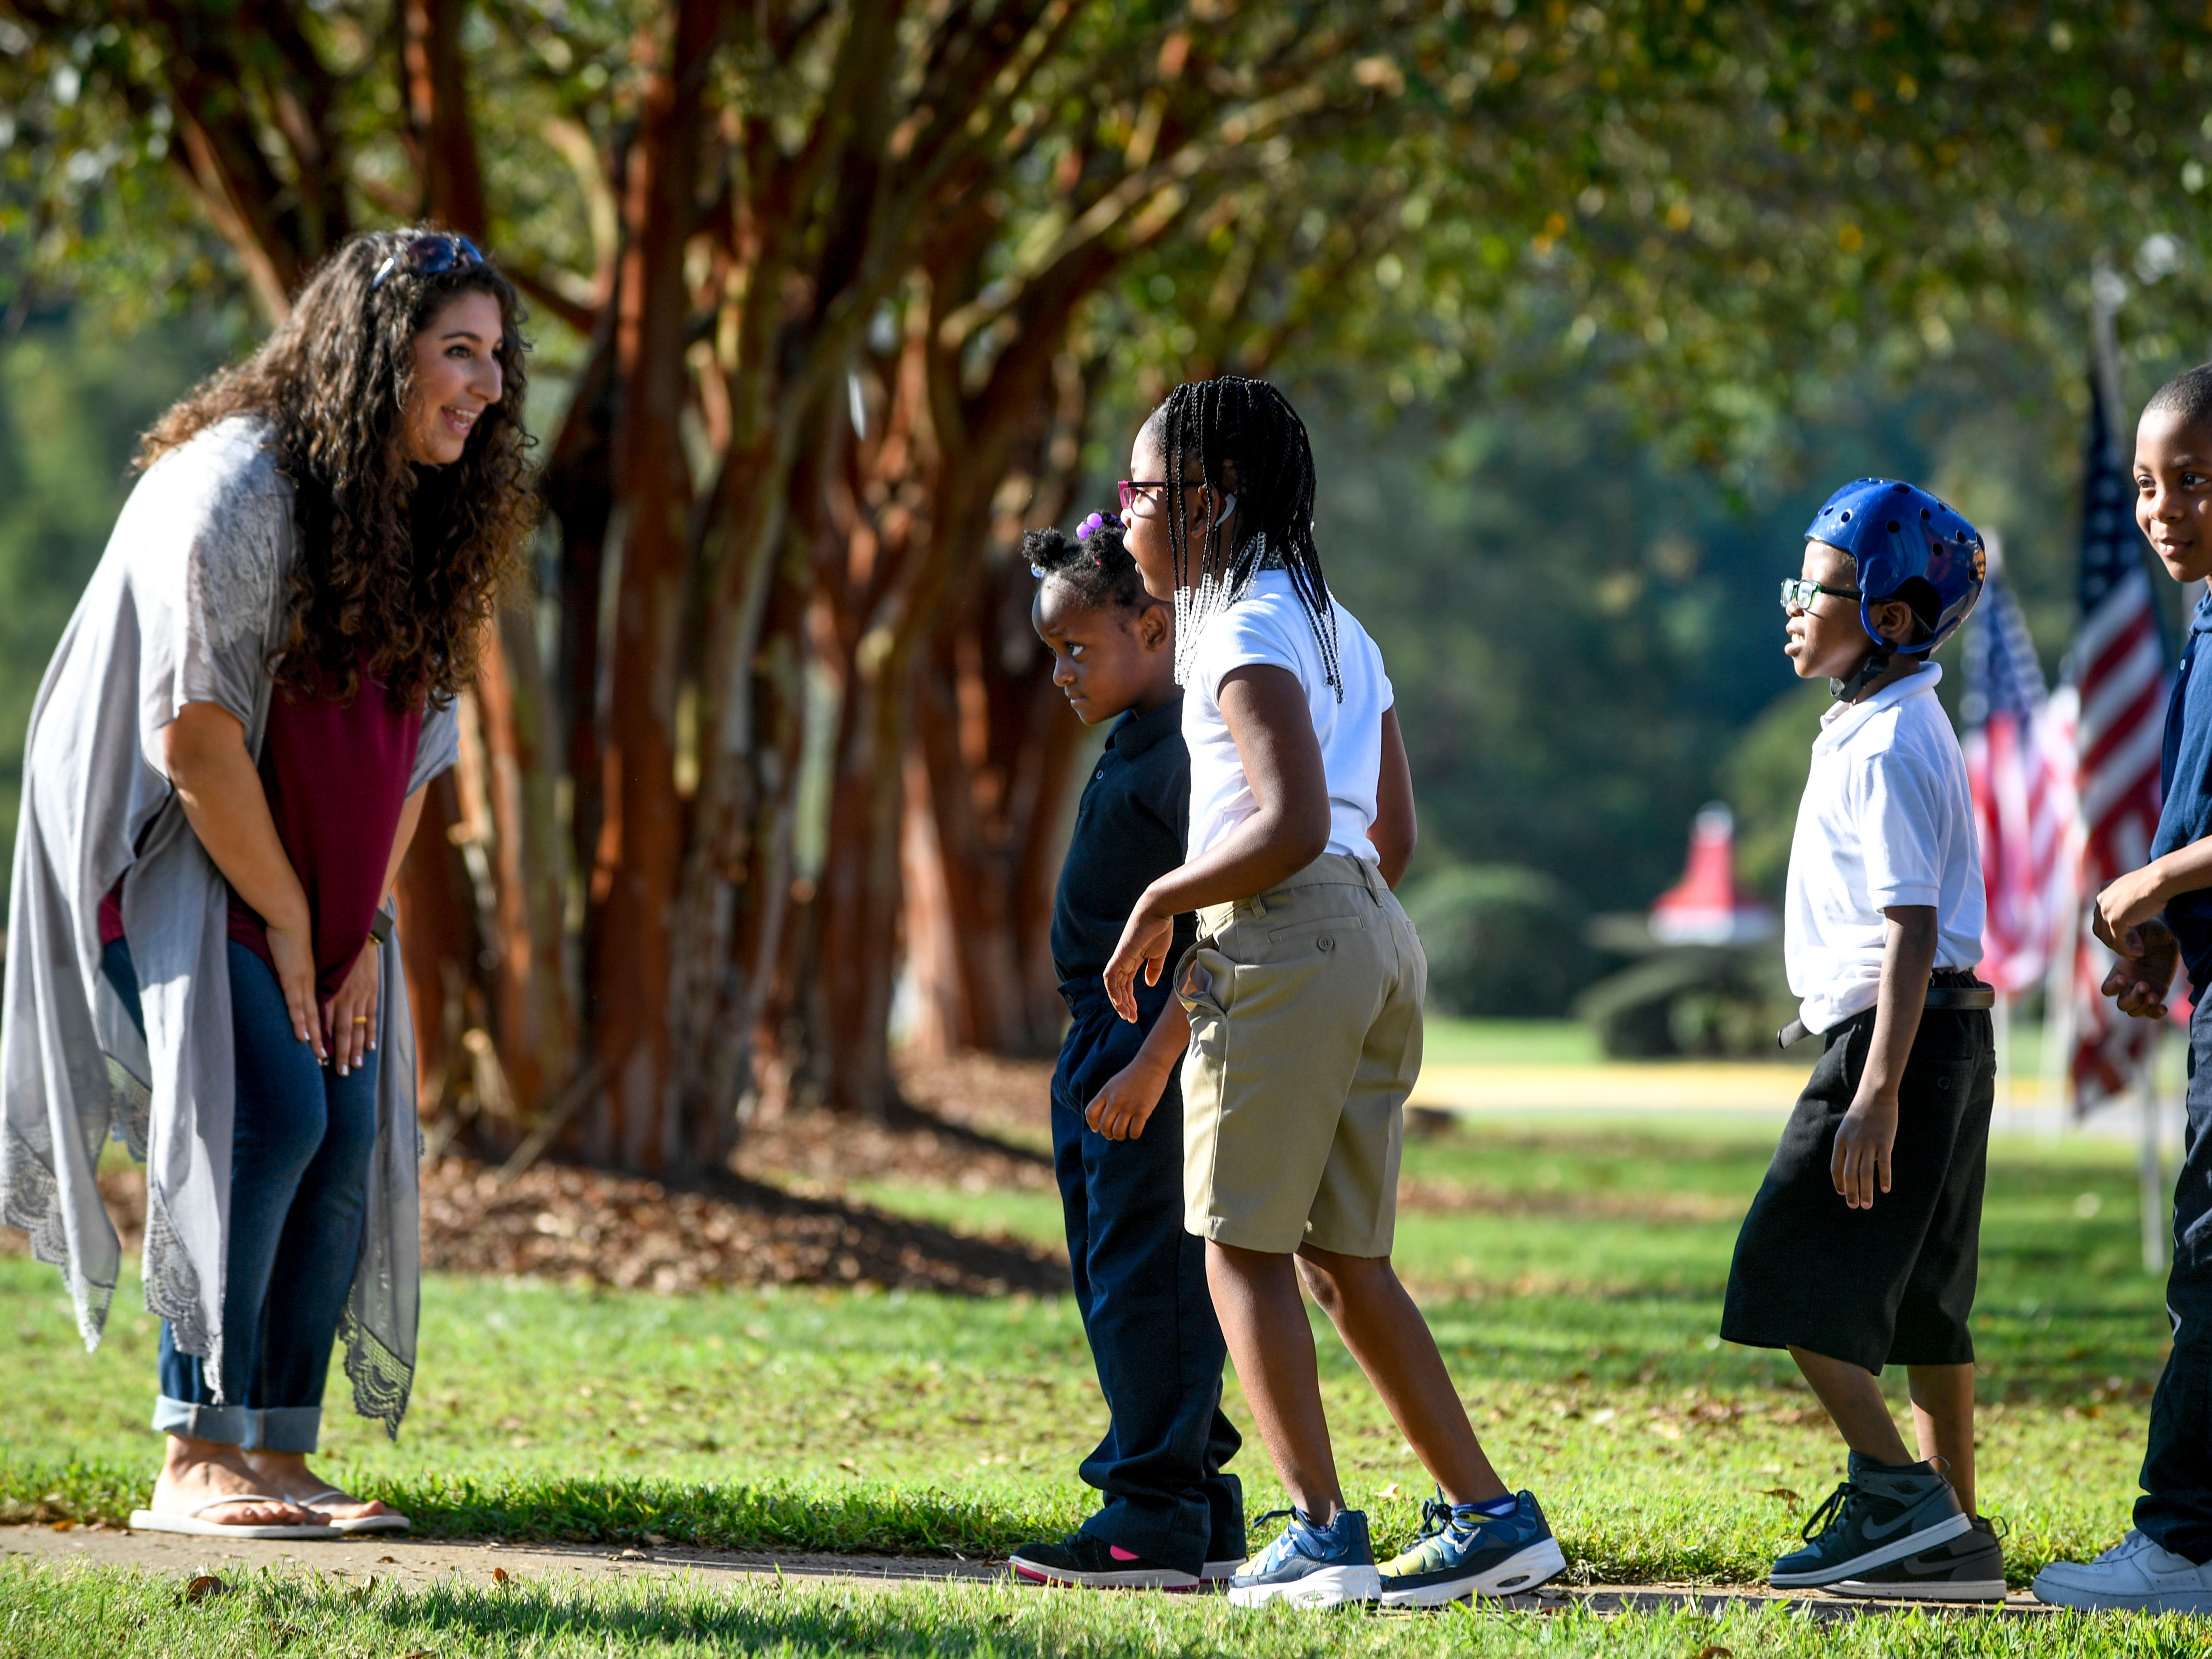 An organizer greets kids arriving from a bus at the Day of Champions celebration held at Jackson Fairgrounds Park in Jackson, Tenn., on Wednesday, Sept. 19, 2018.